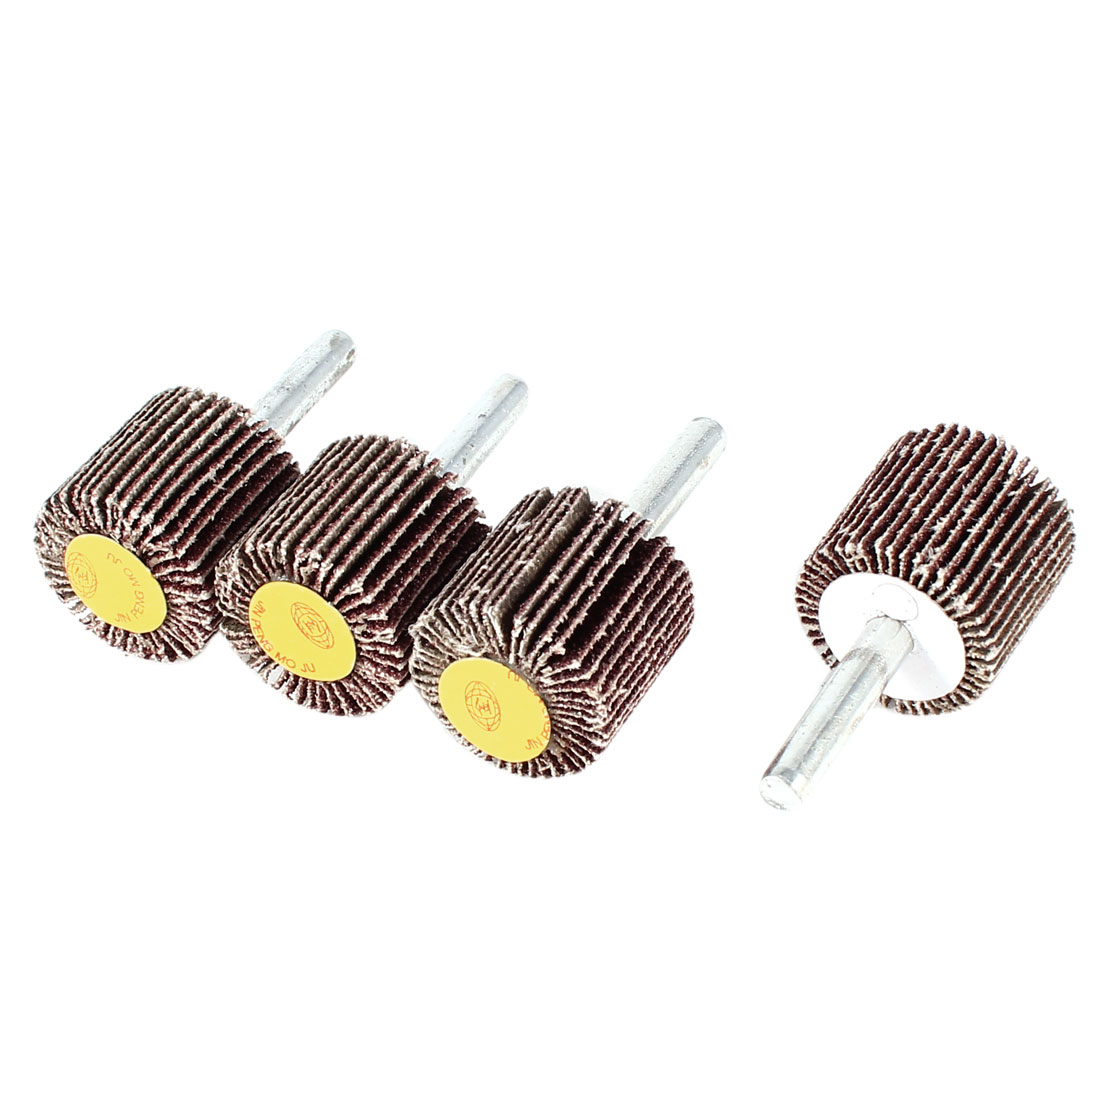 25mm Head 6mm Shank Abrasive Mounted Flap Wheels Brush 4 Pieces